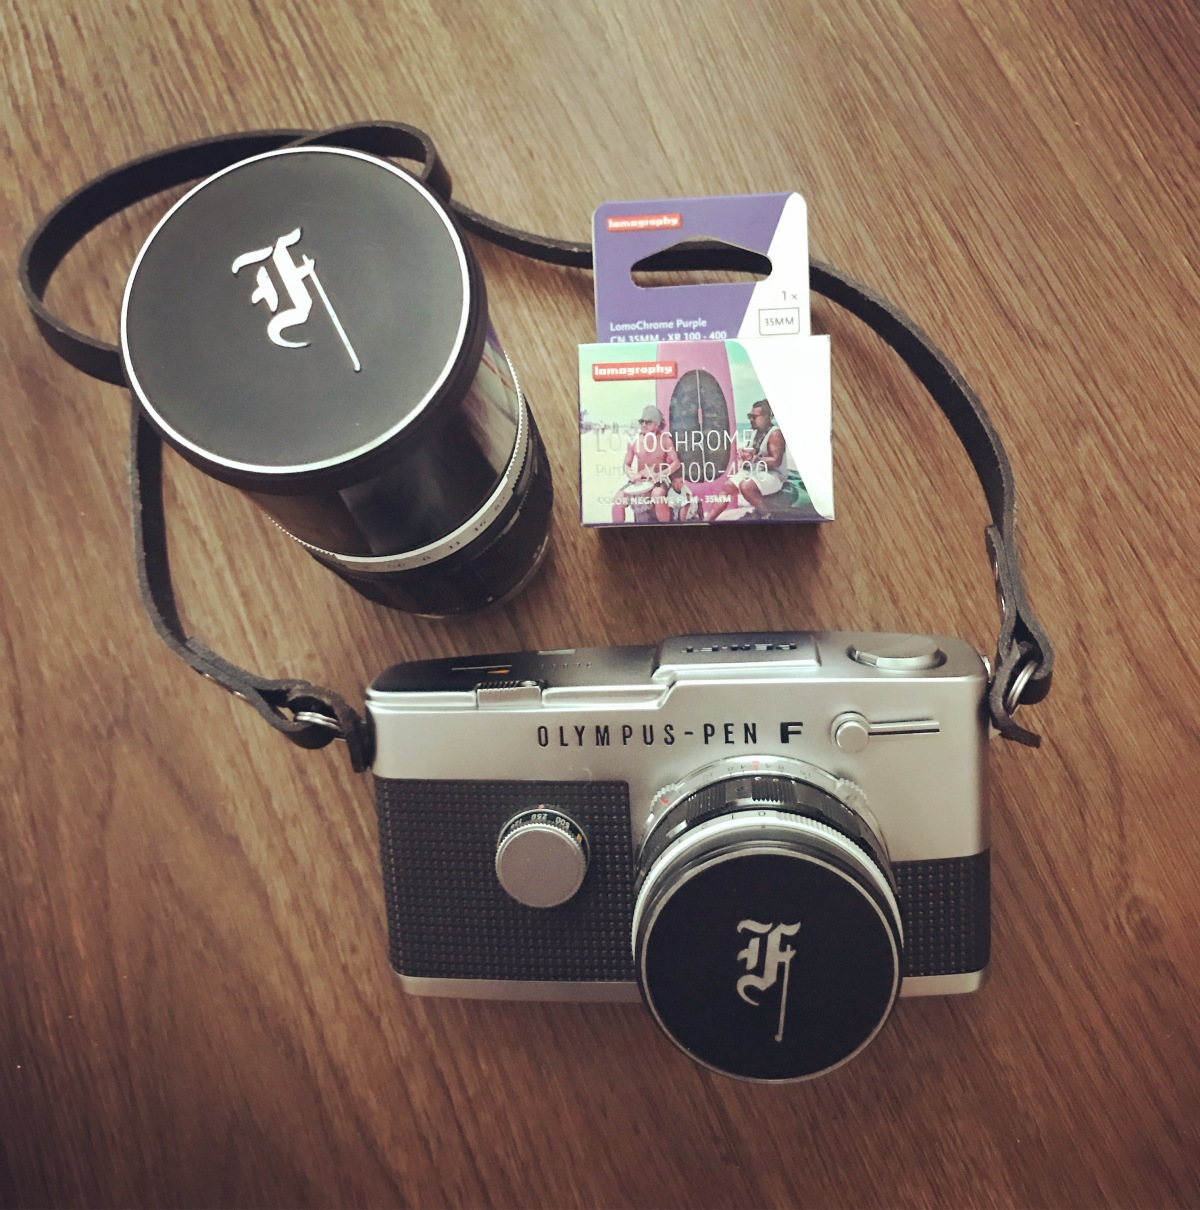 My Olympus Pen FT Camera and Lomochrome Purple 35mm film